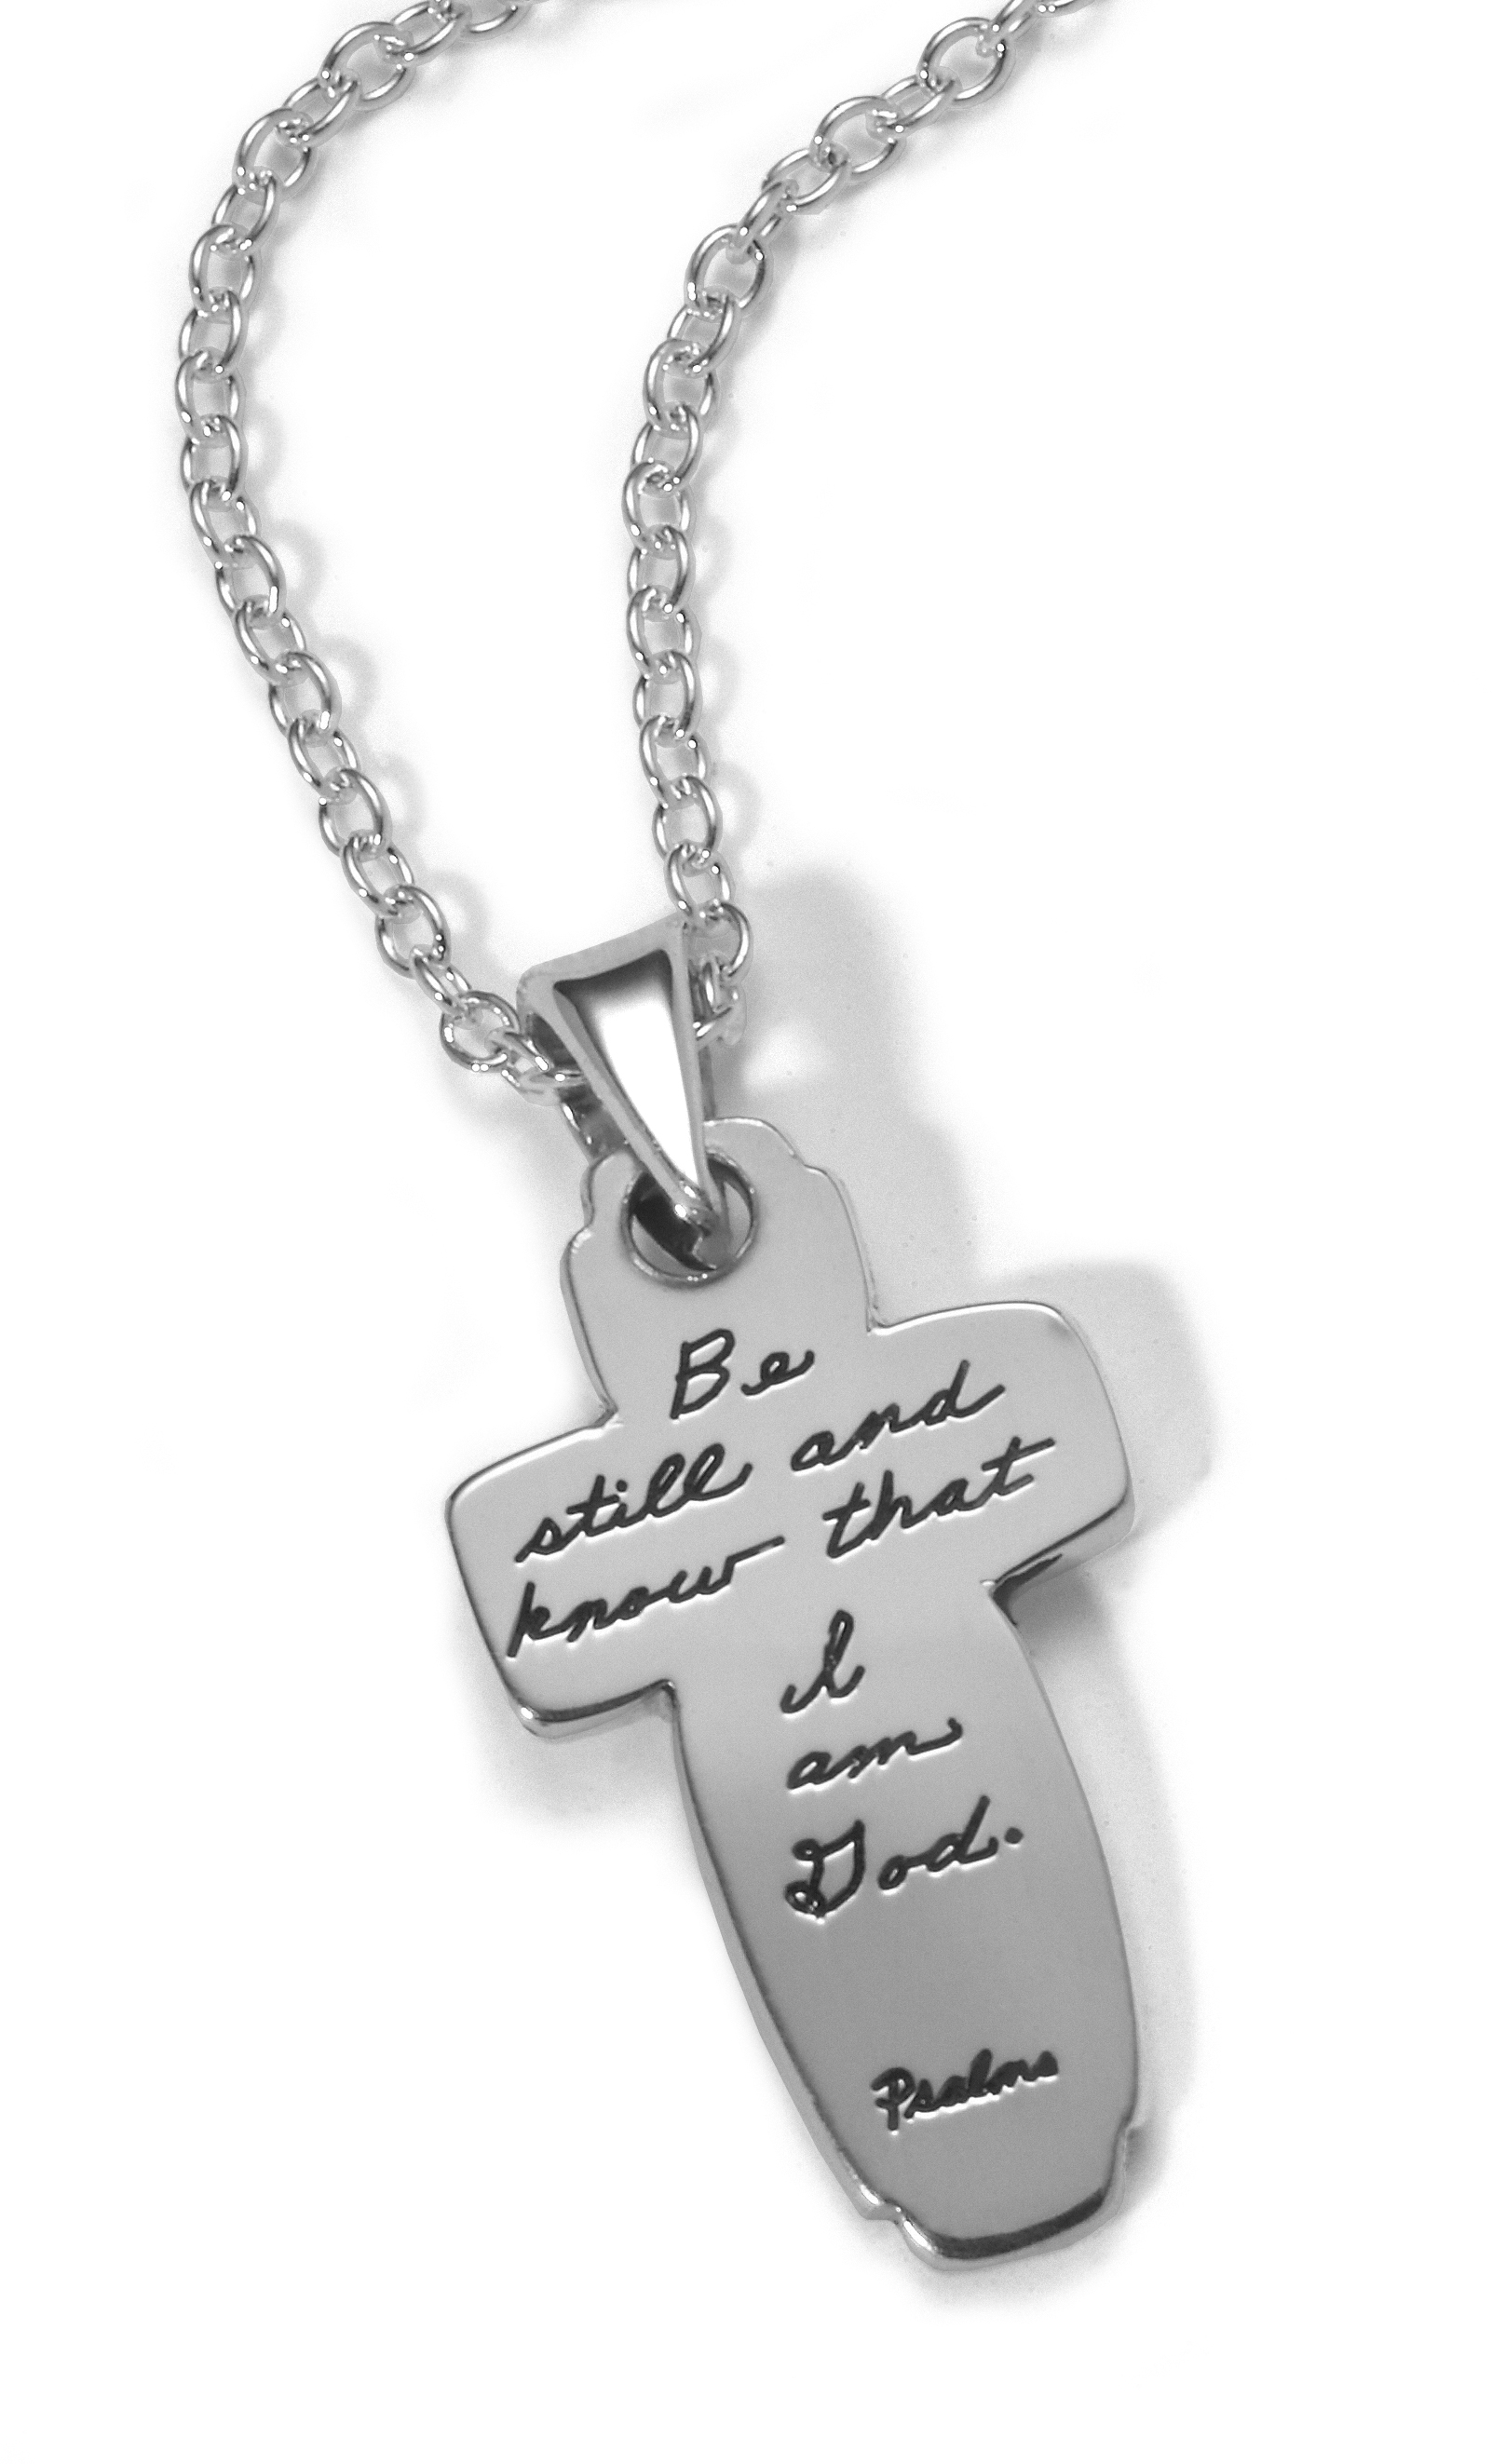 Inspirational Sterling Silver Cross Pendant with Engraved Quote - Be still, and know that I am God. - Psalms